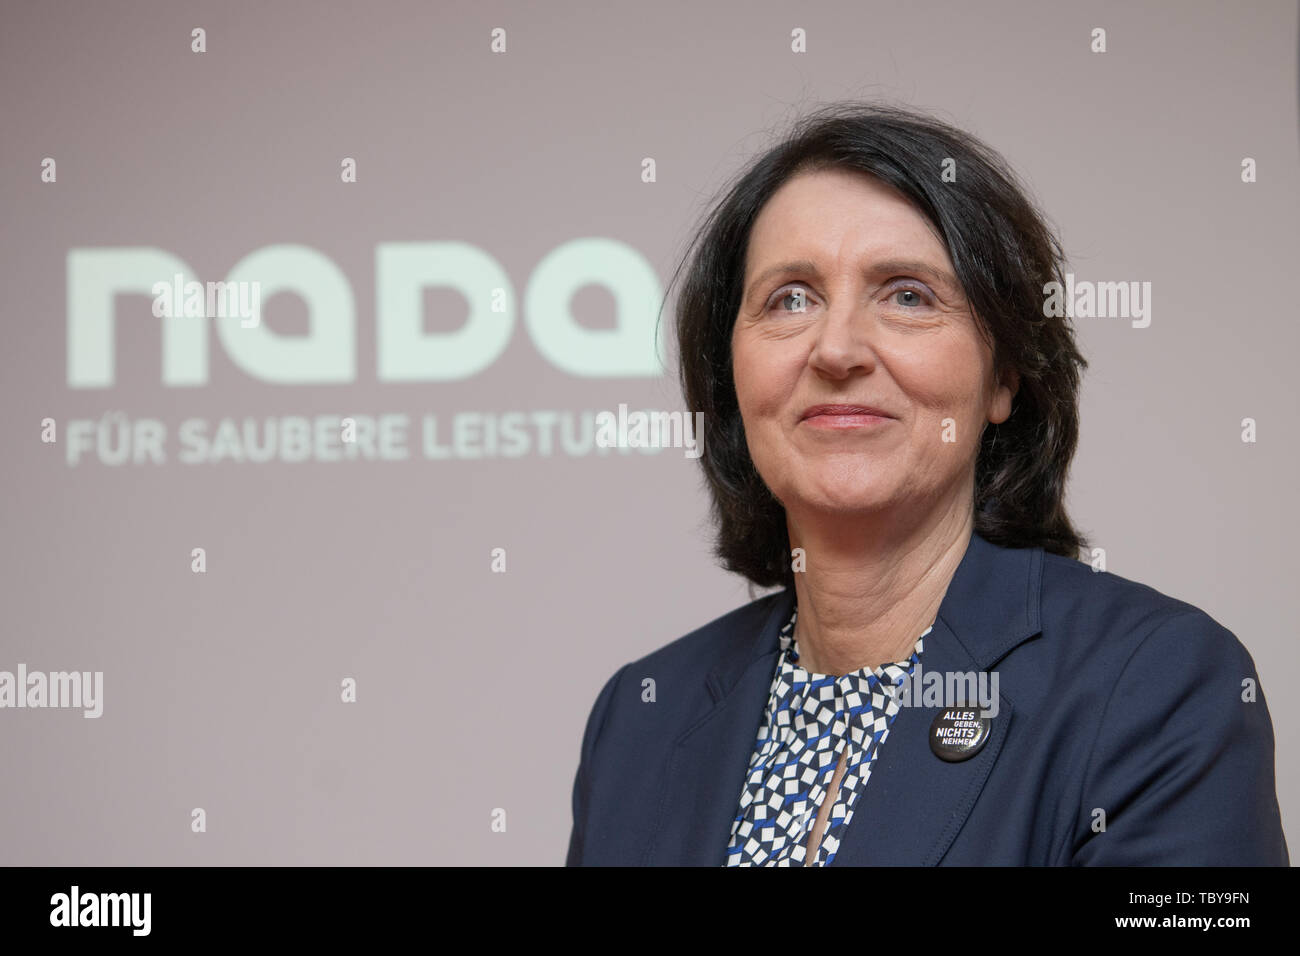 Berlin, Germany. 04th June, 2019. Andrea Gotzmann, Chief Executive Officer of the National Anti-Doping Agency Germany (NADA), recorded at the NADA Annual Press Conference. Credit: Jörg Carstensen/dpa/Alamy Live News Stock Photo